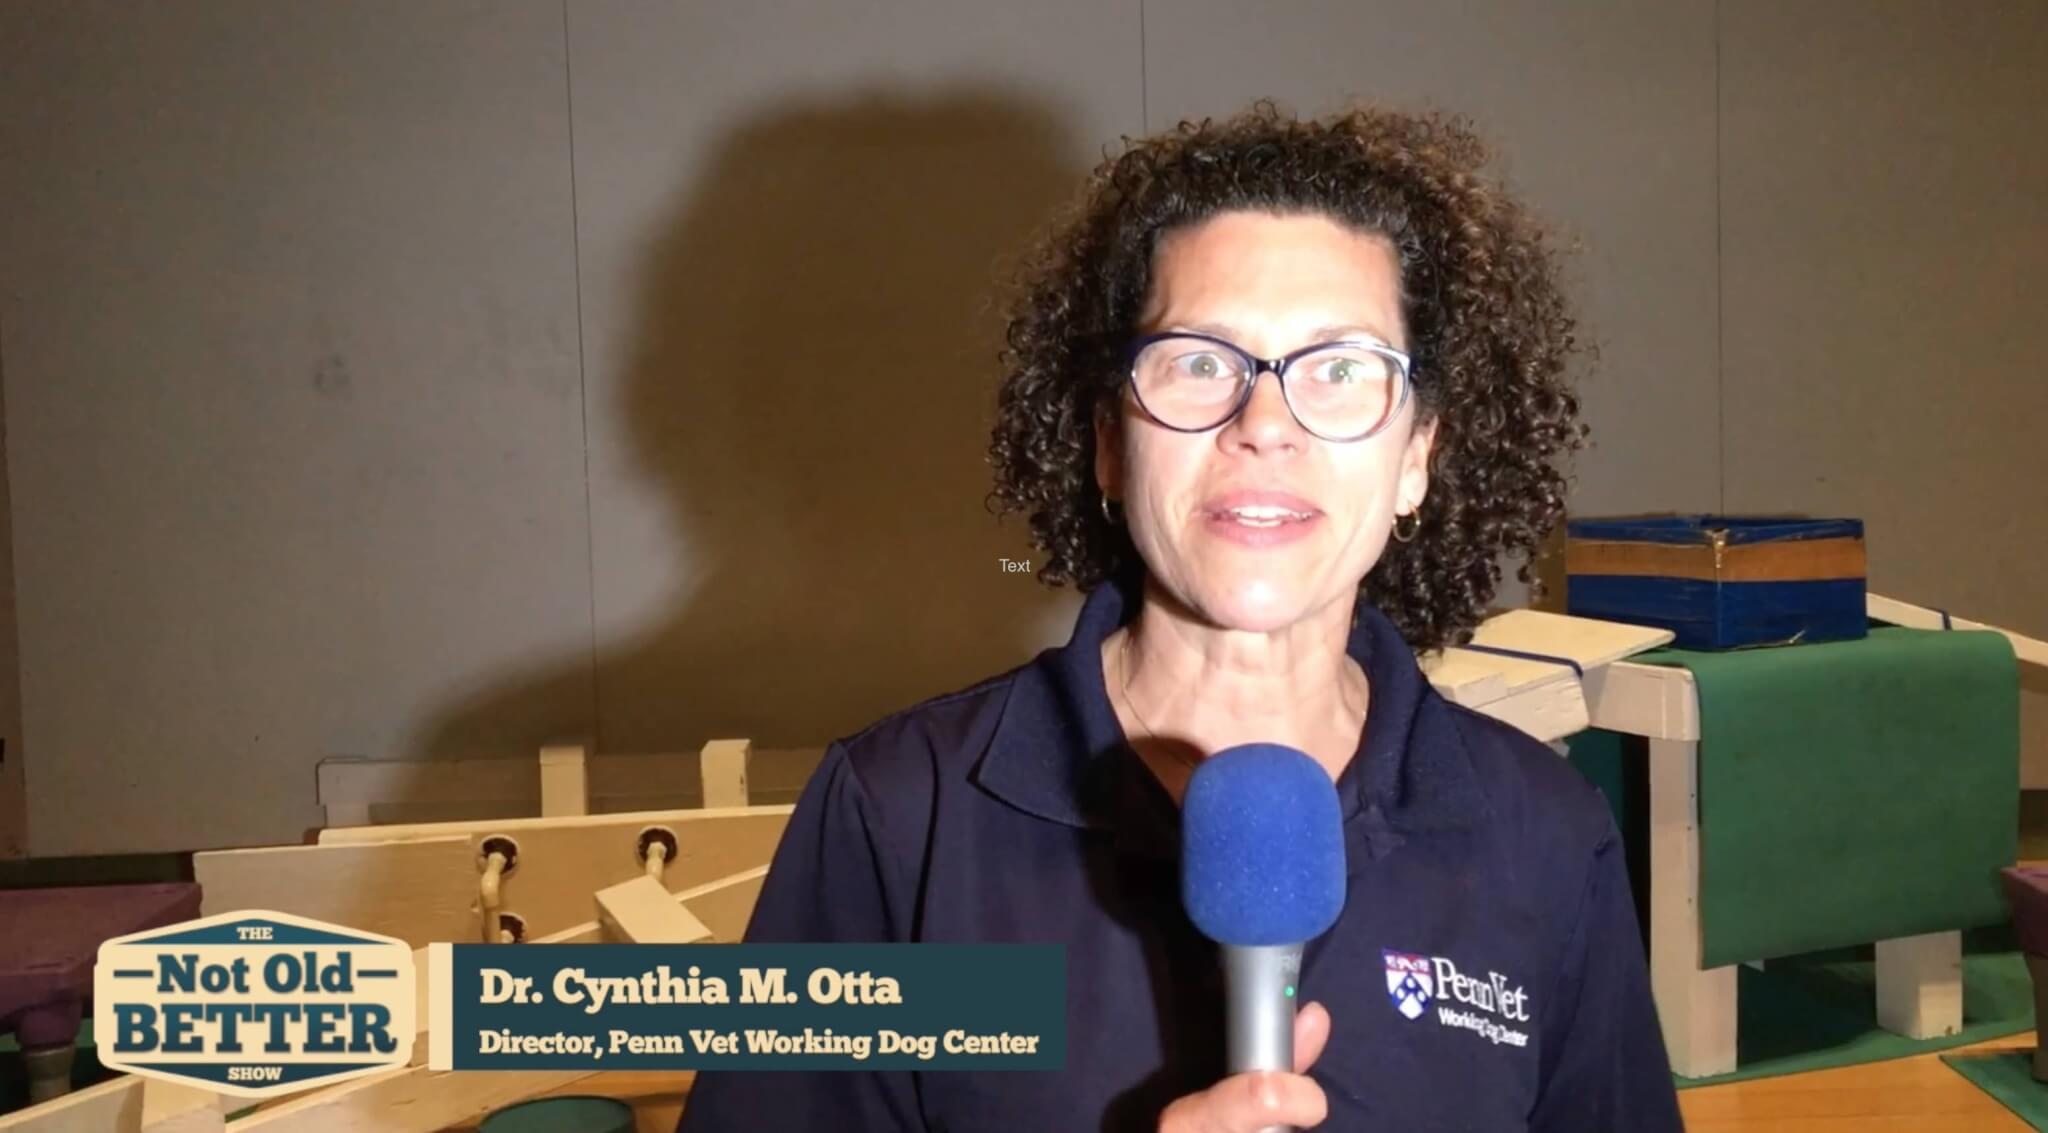 Dr Cindy Otto, Founder of the Penn Vet Working Dog Center